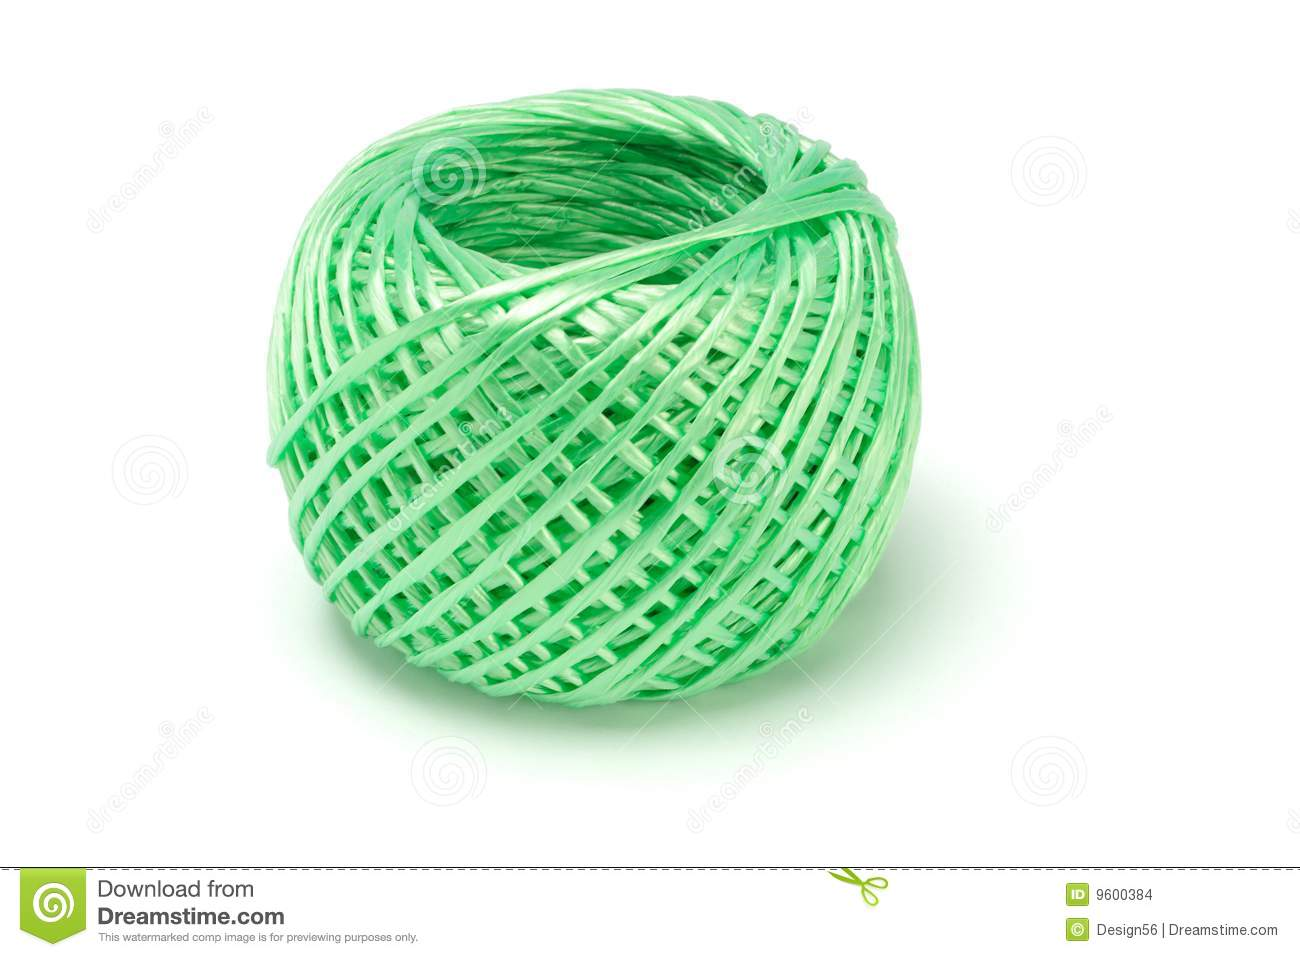 Ball Of Nylon String Stock Images - Image: 9600384